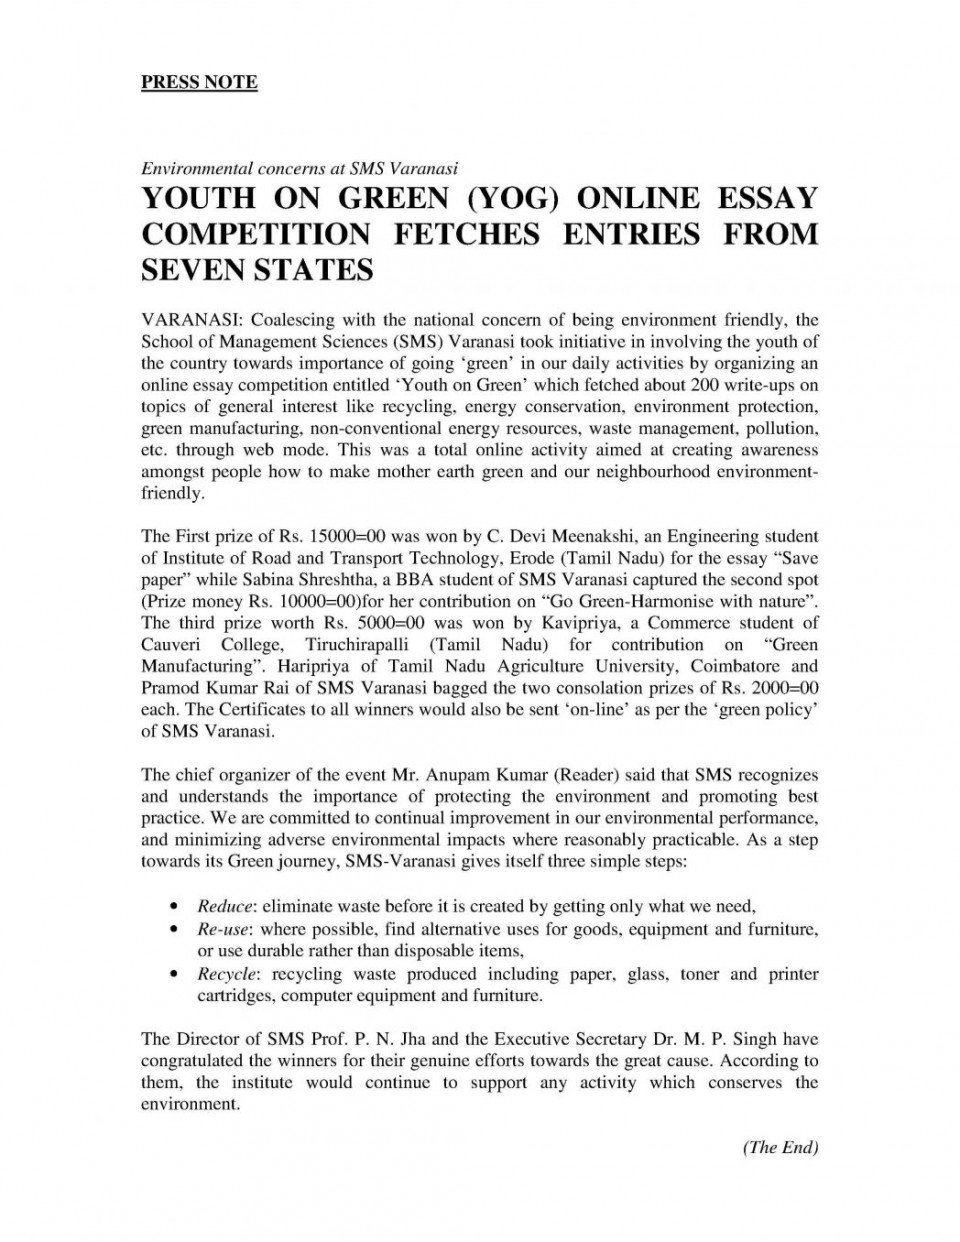 020 Best Essays For College Essay On Good Habits How Tot Application Online Yog Press Re About Yourself Examples Your Background Failure Prompt Off Hook 1048x1356 Example Amazing To Start An Write A Paper Climate Change Expository With Quote Format 960